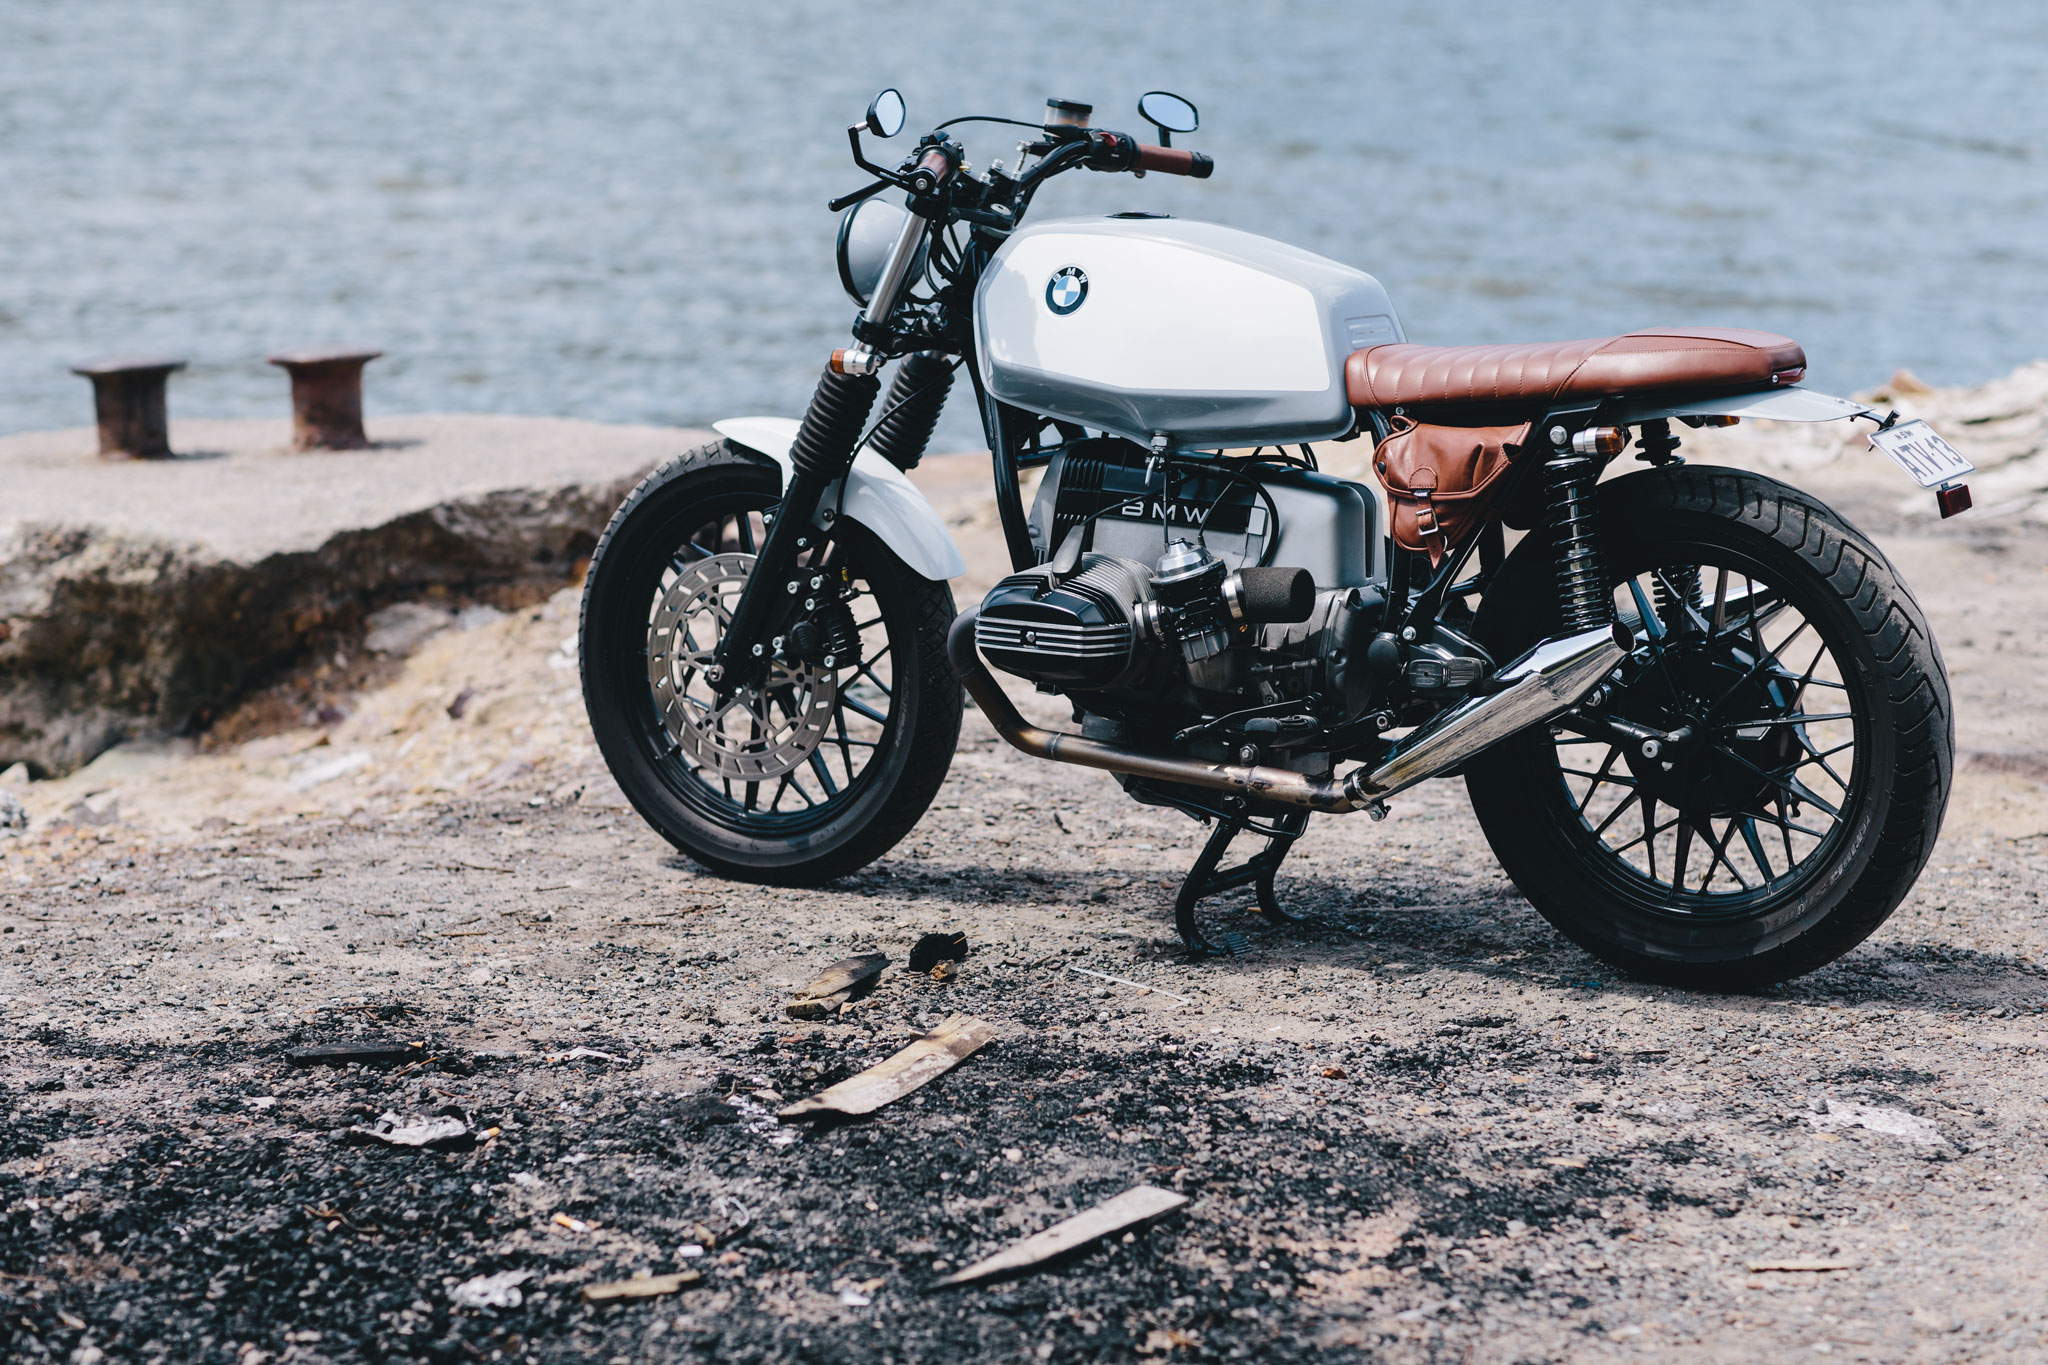 The Hand-Me-Down – Ross' BMW R65LS